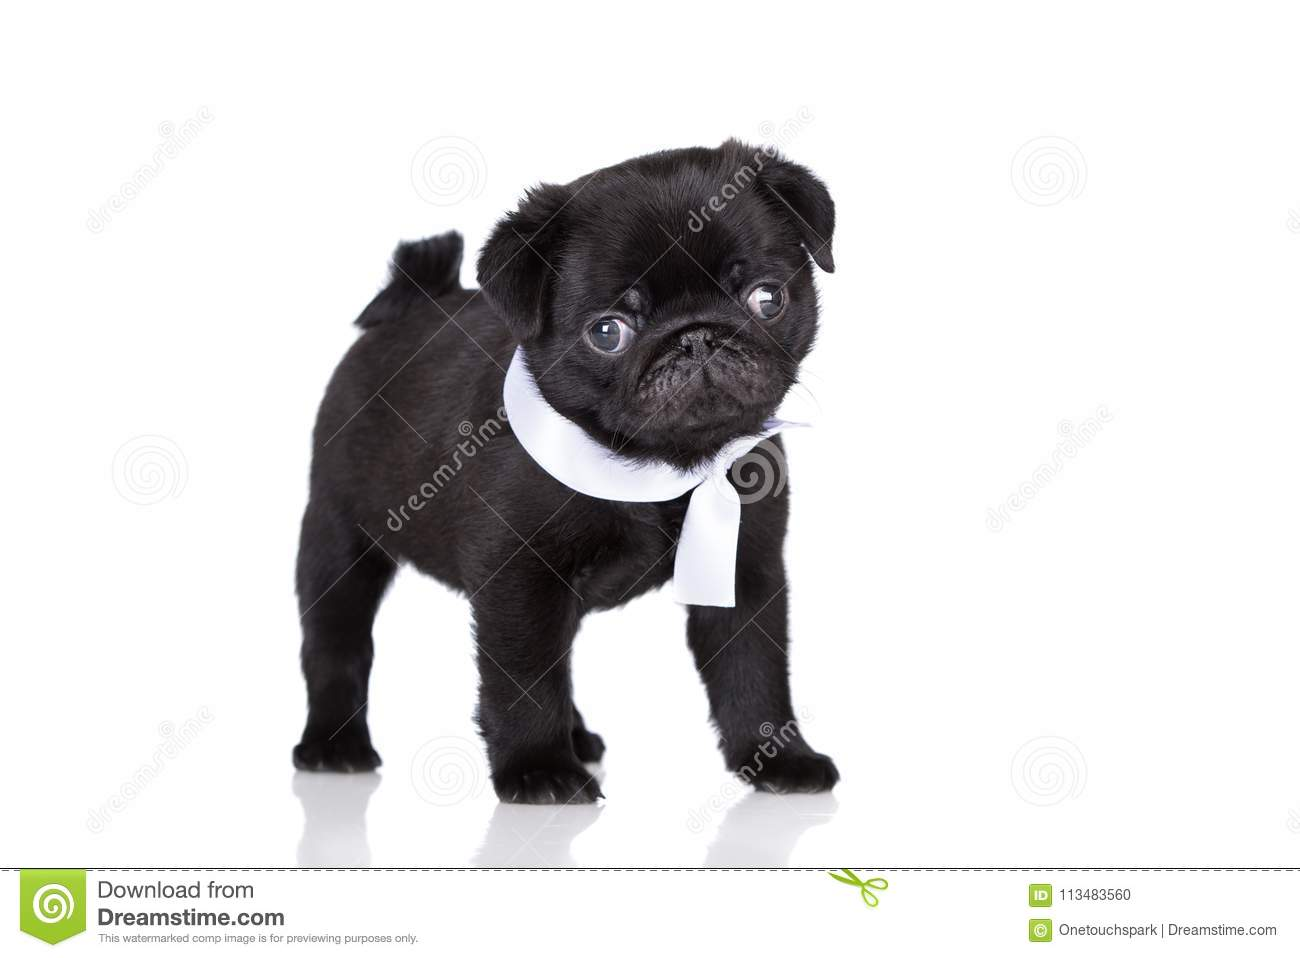 Black Pug Puppy On White Background Stock Photo Image Of Mammal Cute 113483560